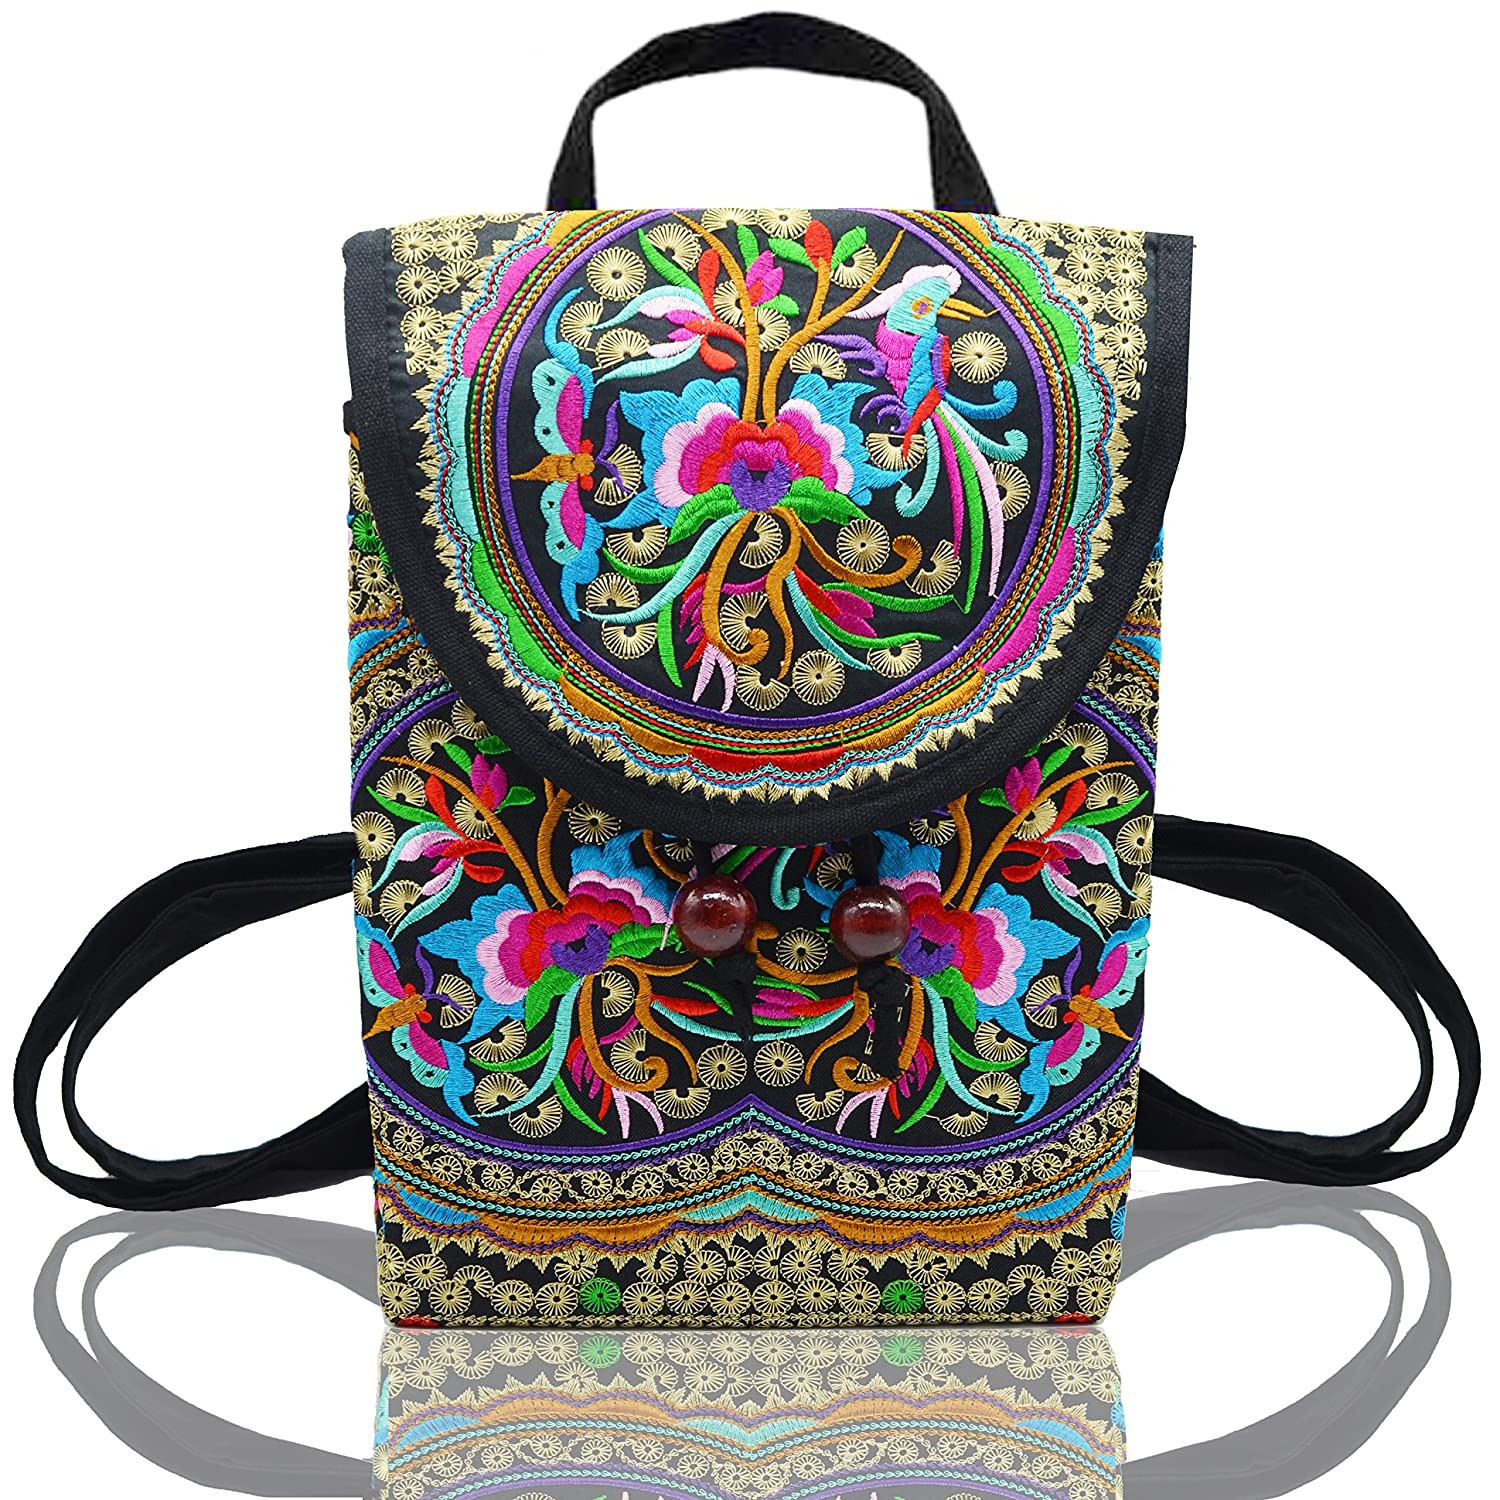 837a01712665 lovely MAYMII Women Handmade Flower Embroidered Bag Canvas National Trend Embroidery  Ethnic Backpack Travel Bags Schoolbags